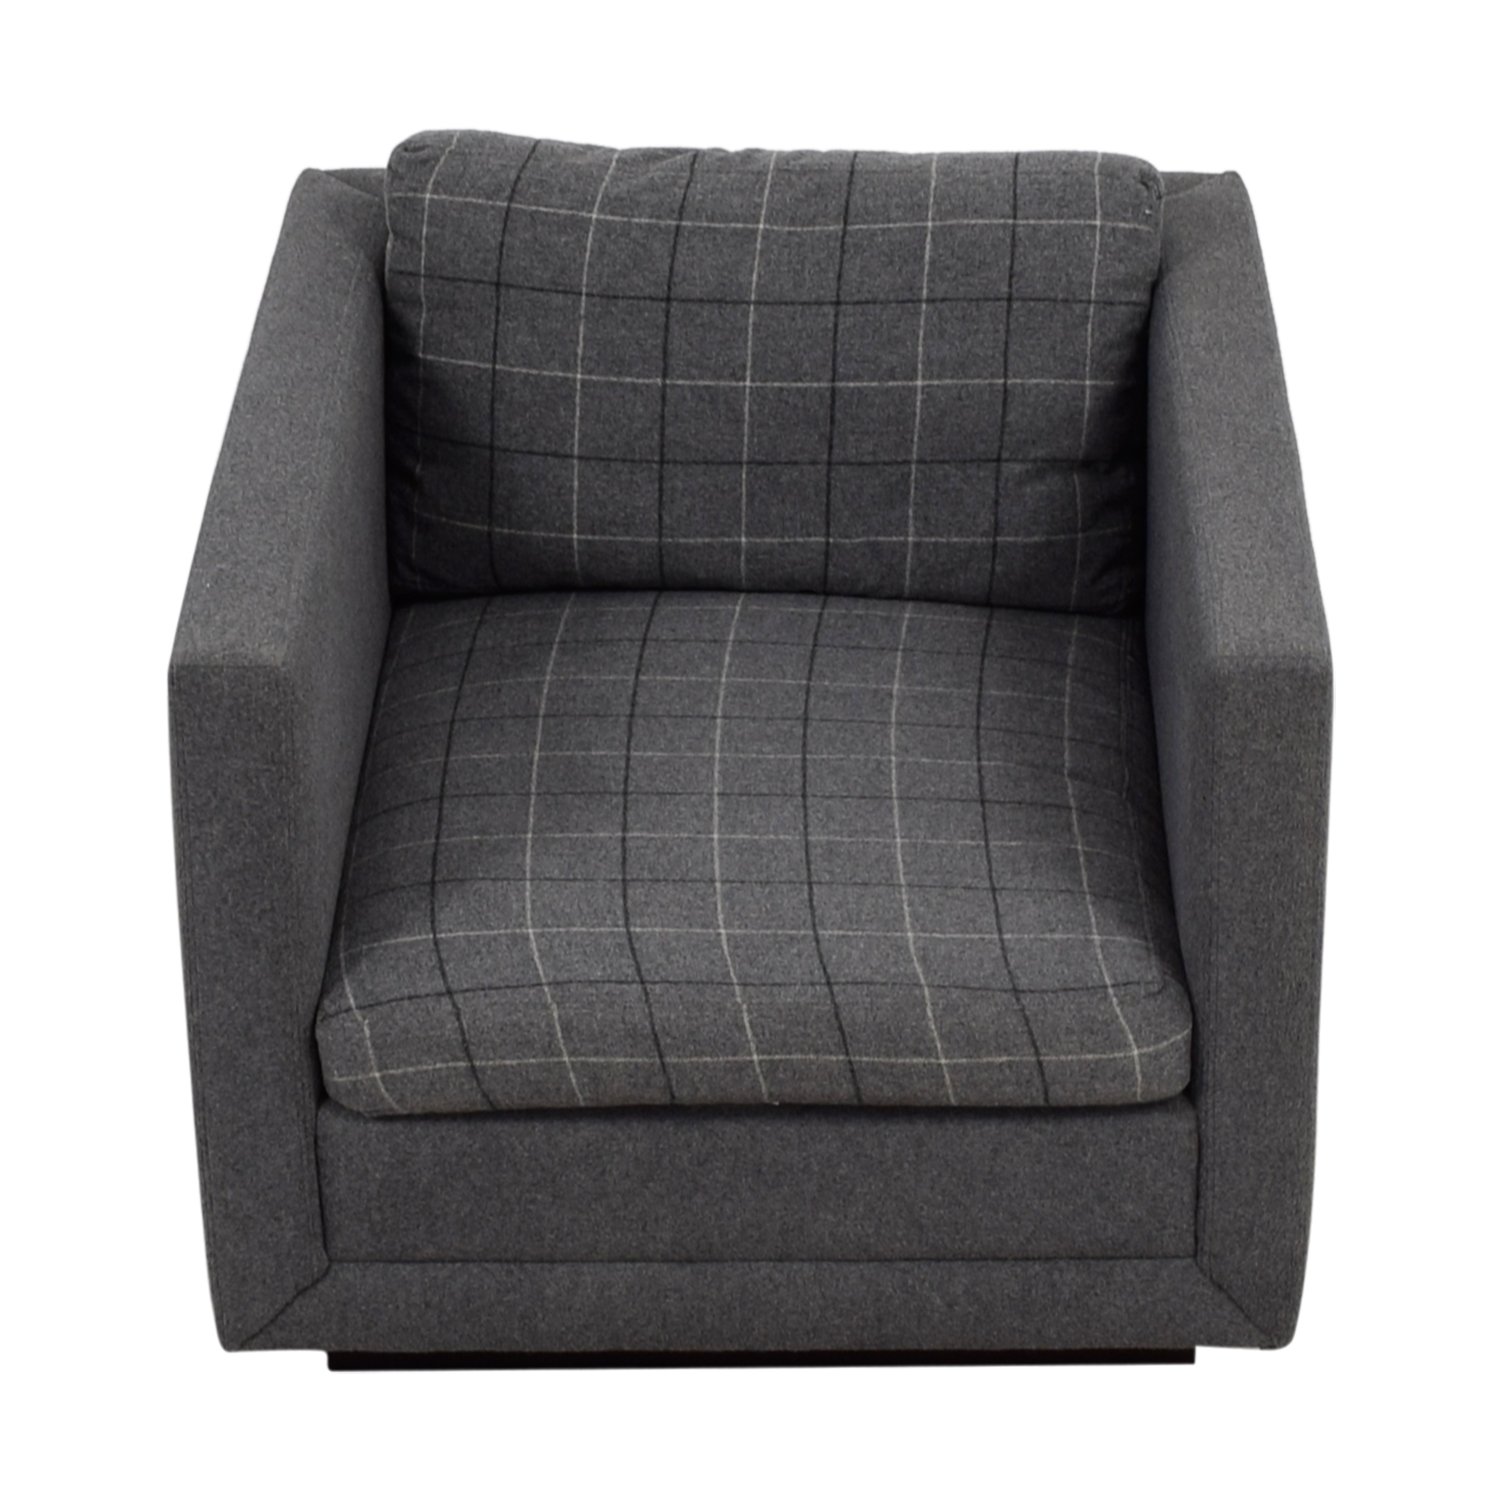 Jonathan Adler Jonathan Adler Blakeley Grey Plaid Accent Chair discount